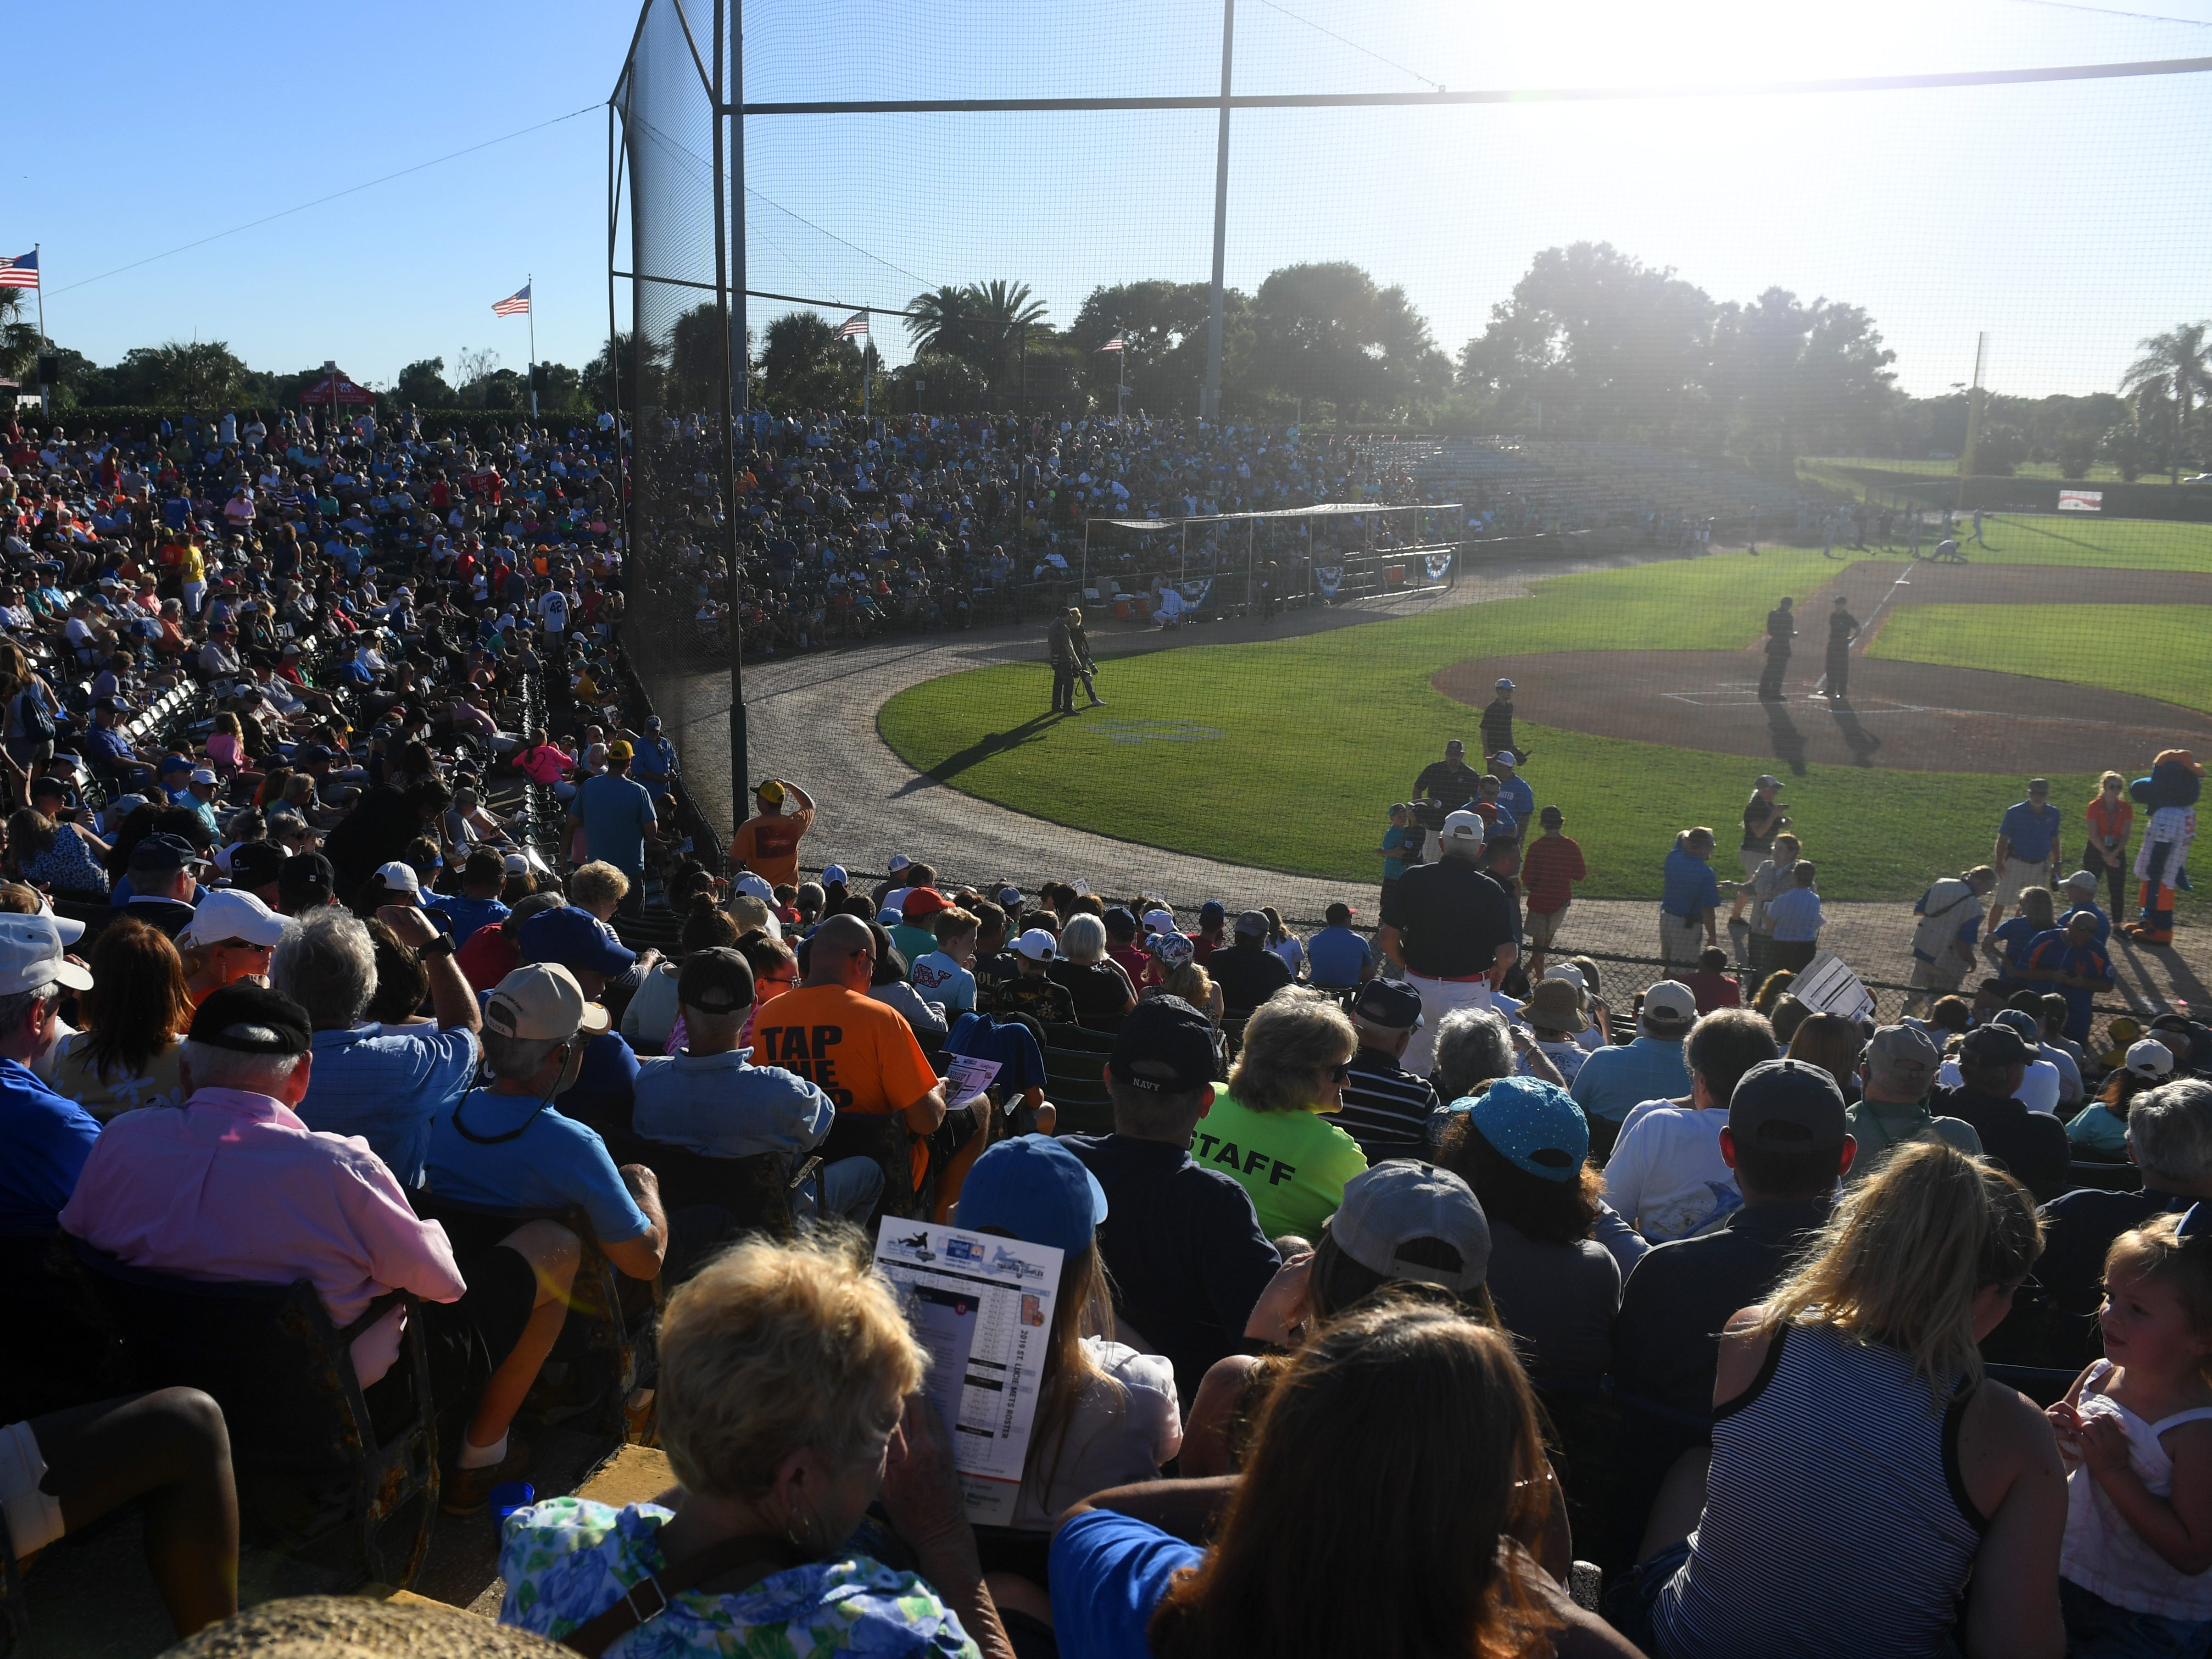 Baseball fans and community members gathered at Holman Stadium on Monday, April 15, 2019 for the 6th annual Jackie Robinson Celebration Game at the Jackie Robinson Training Complex in Vero Beach. Proceeds from the sold out game between the St. Lucie Mets and Fort Myers Miracle went to benefit the United Way of Indian River County.